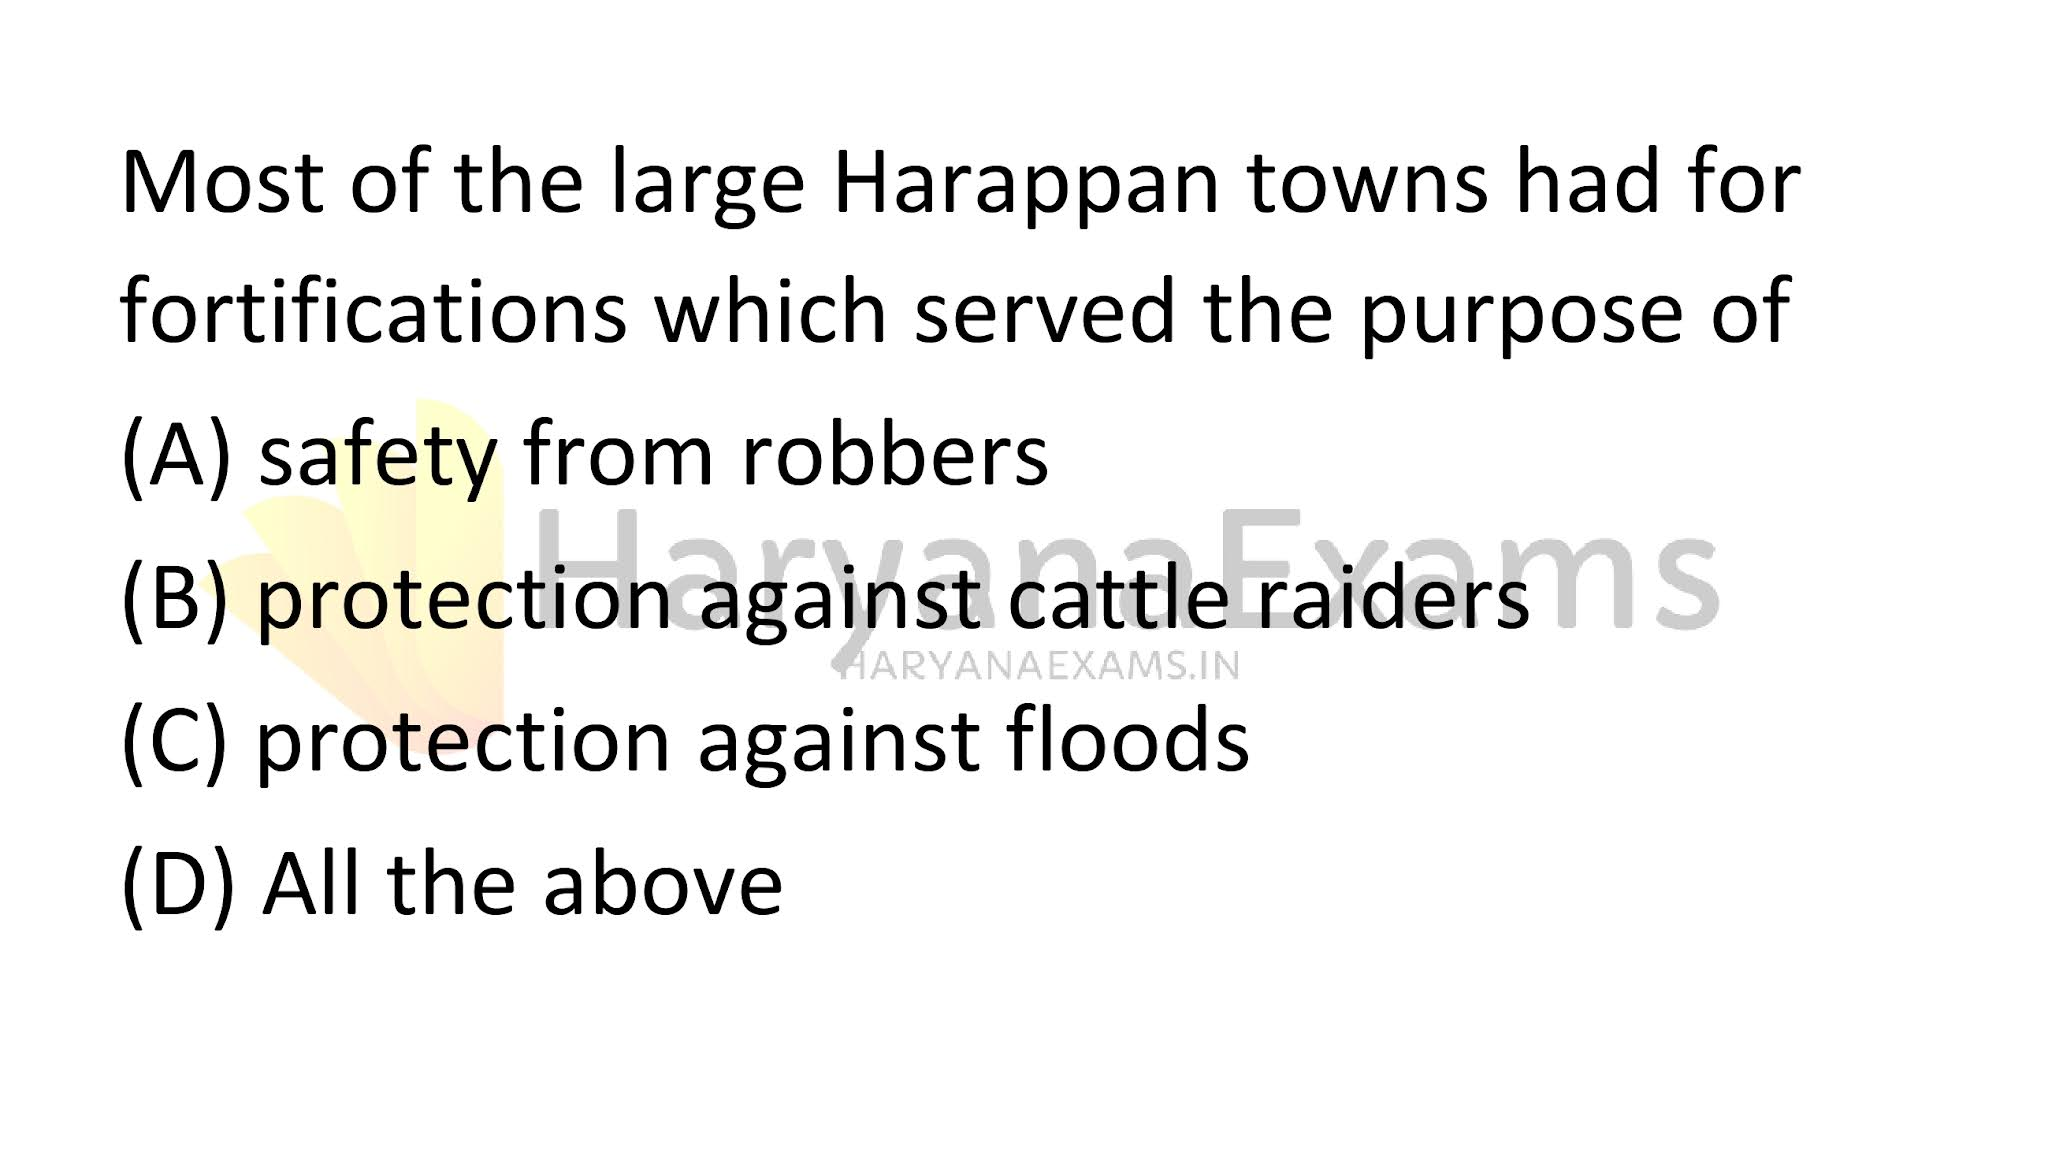 Most of the large Harappan towns had fortifications that served the purpose of